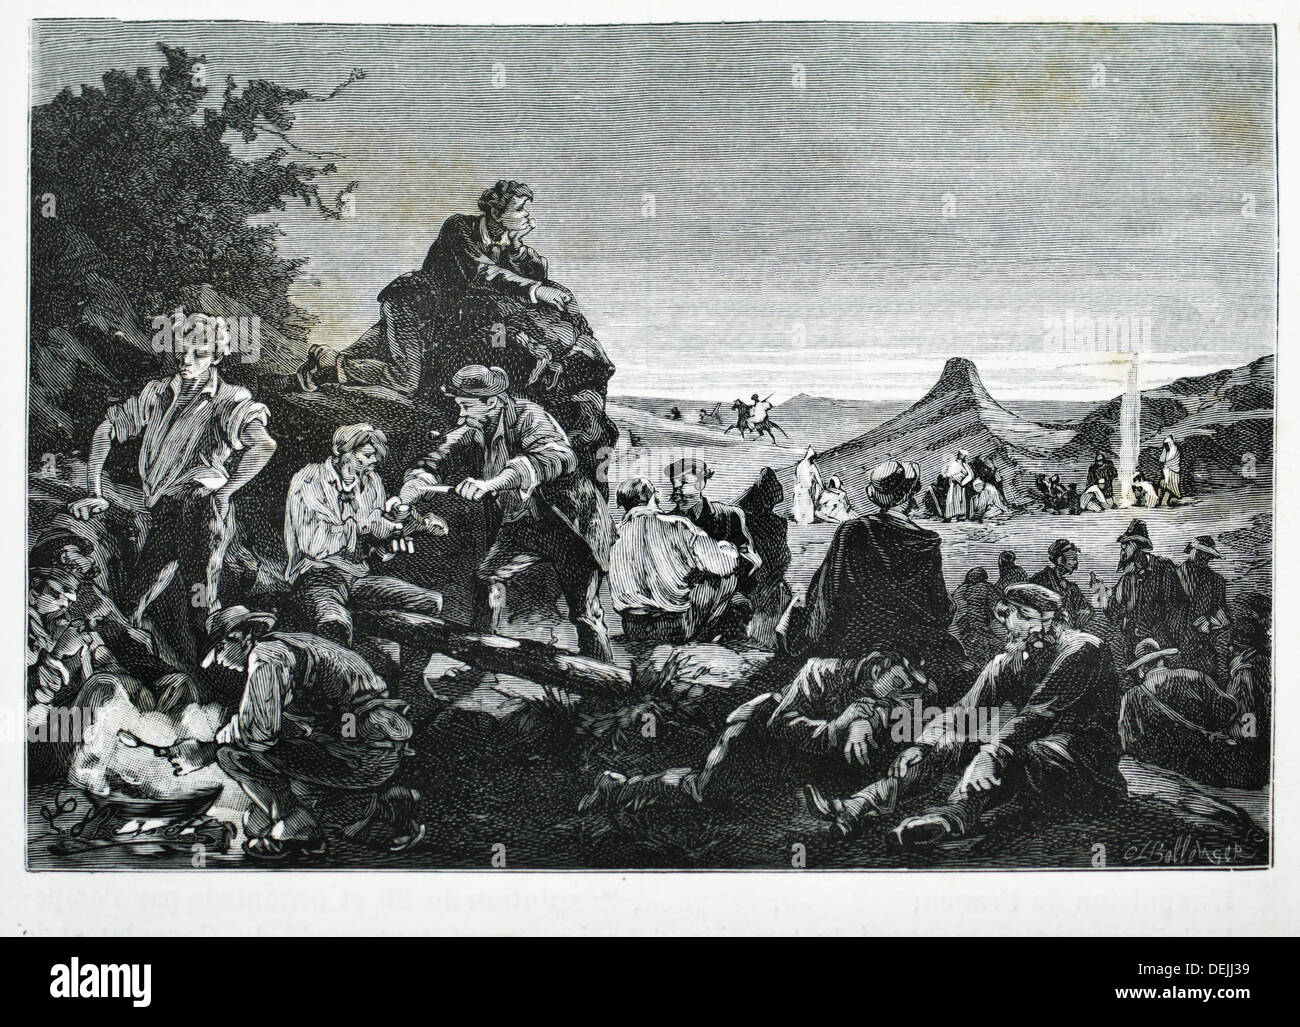 Deported frenchs to Algeria, in 1851 - Stock Image